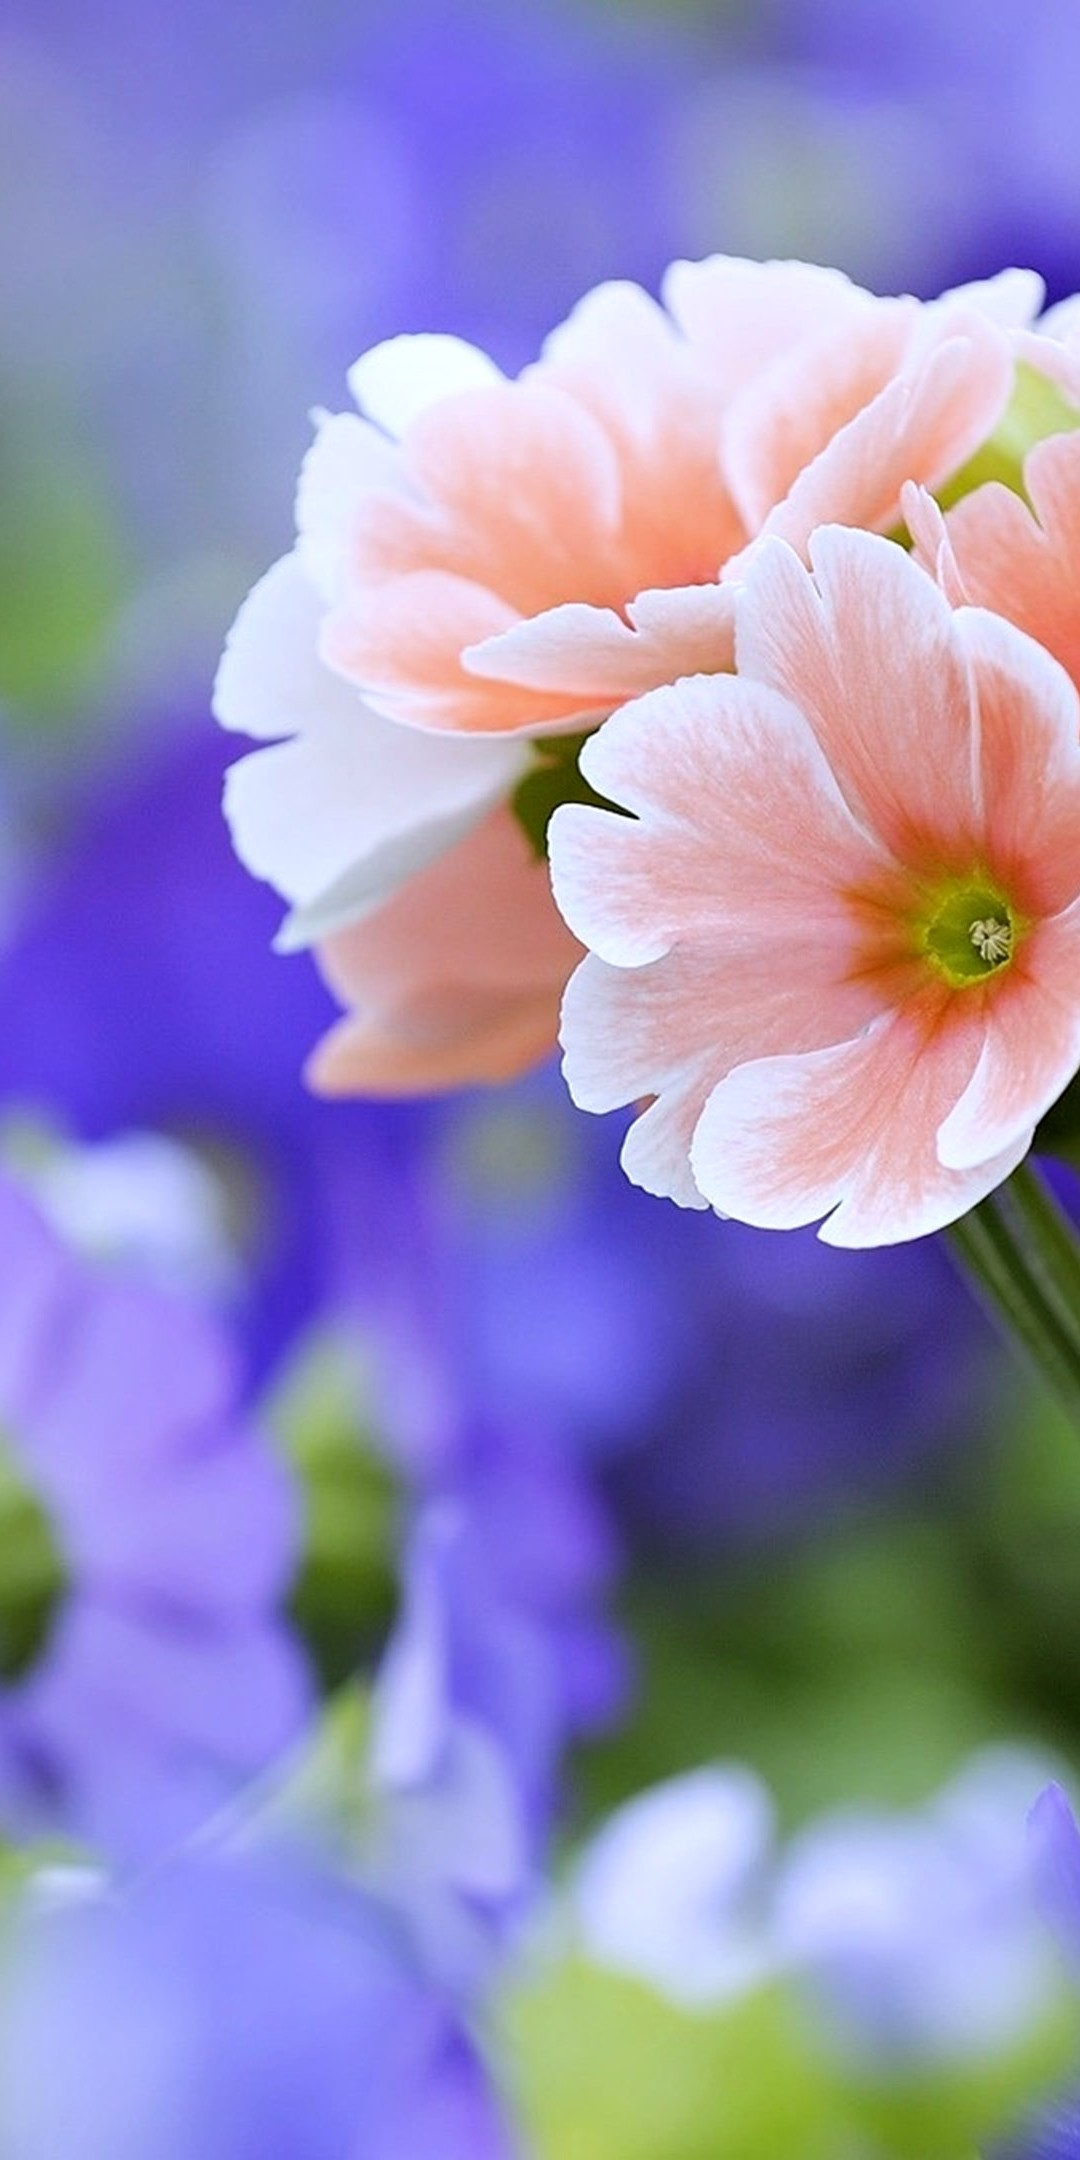 Beautiful Flowers Wallpaper  1080x2160  Beautiful Flowers Wallpaper 1080x2160 768x1536